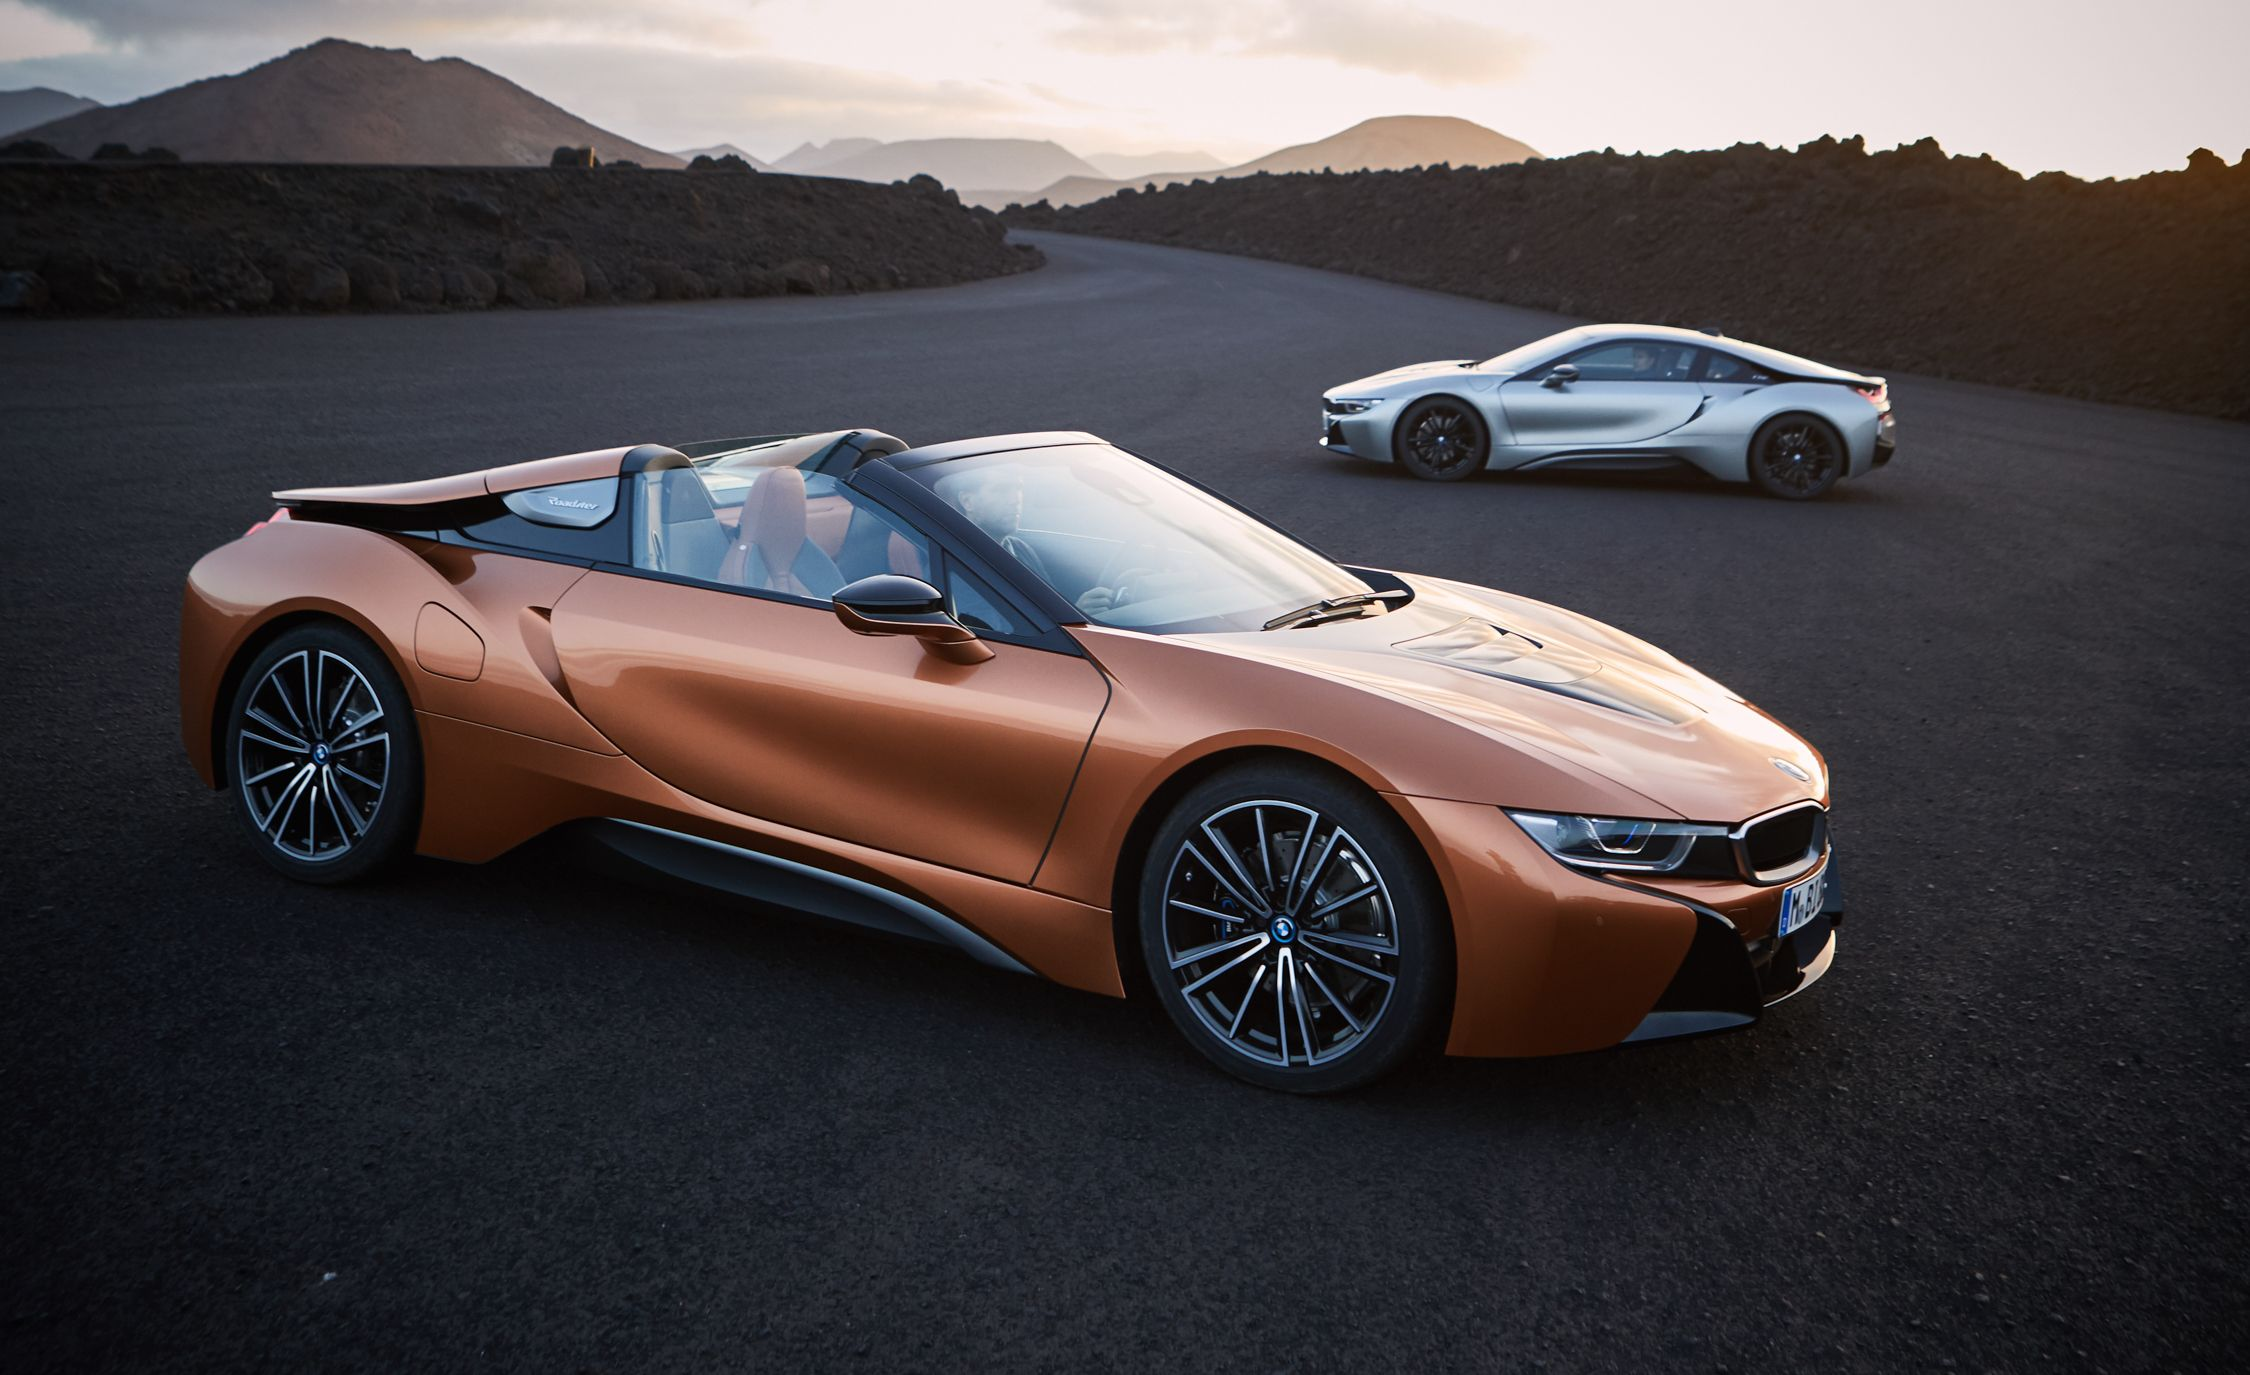 BMW I Reviews BMW I Price Photos And Specs Car And Driver - 2014 bmw i8 msrp